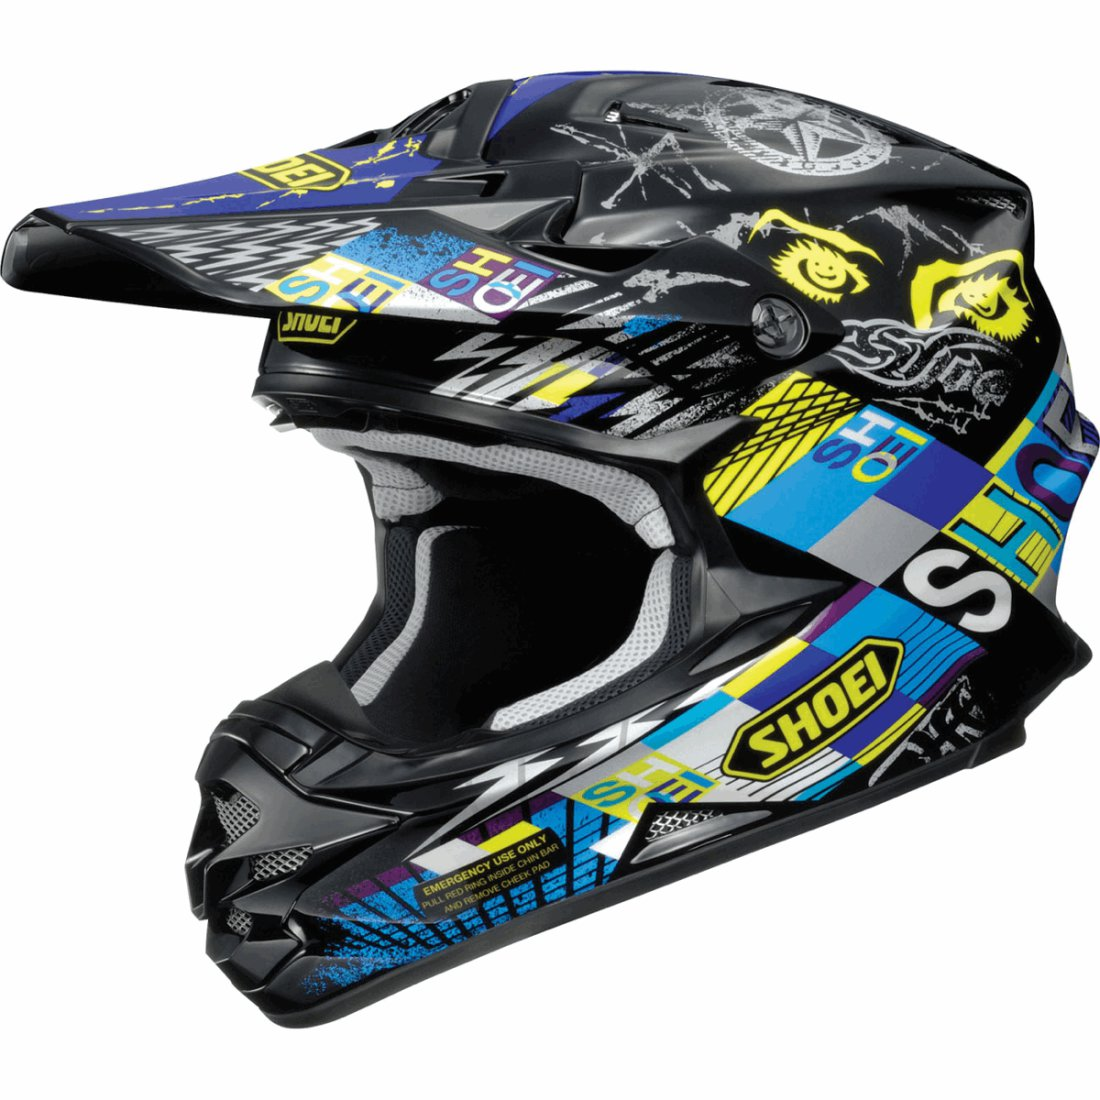 shoei vfx w krack tc 11 helmet motocard. Black Bedroom Furniture Sets. Home Design Ideas